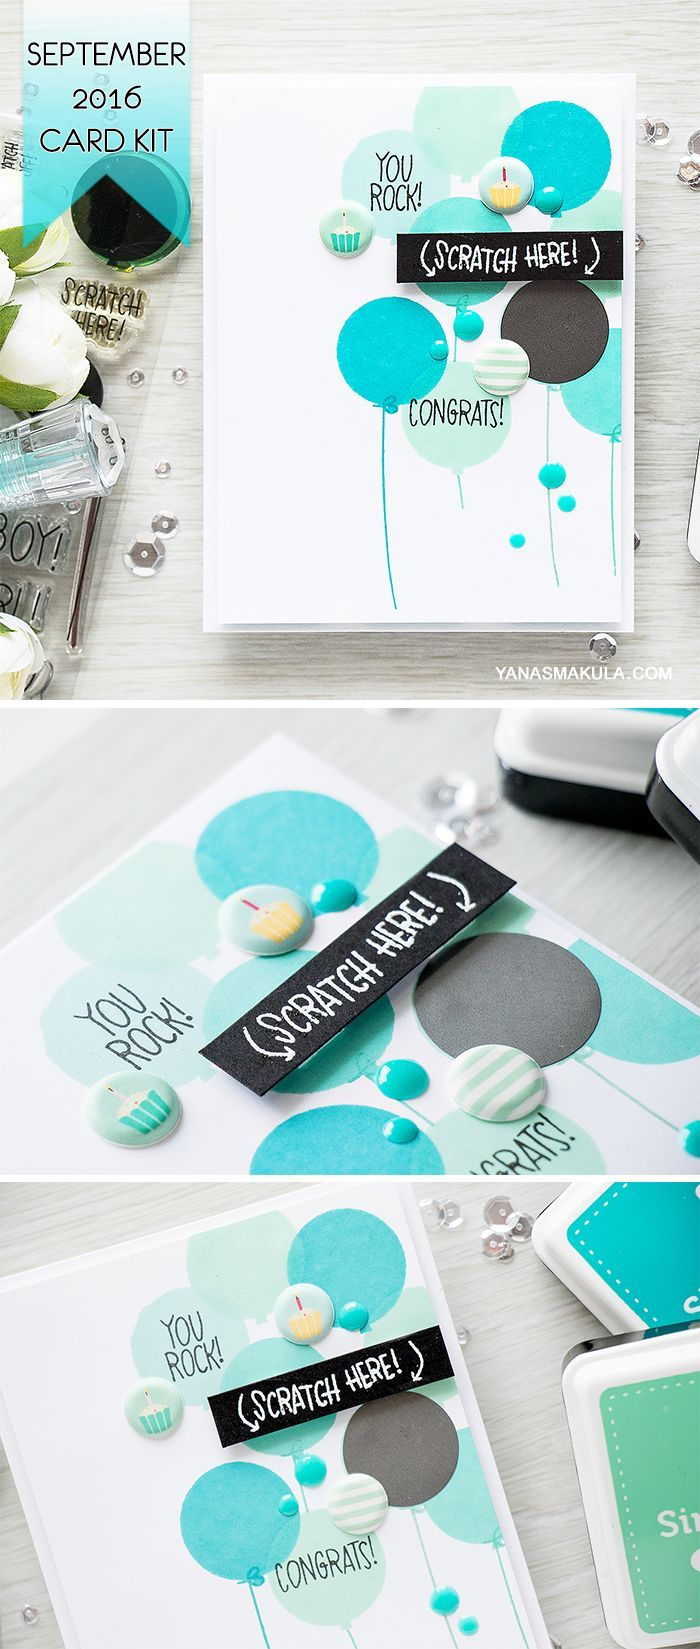 Get creative with Simon Says Stamp September 2016 Card Kit! Masculine Birthday card with a hidden message. For details, visit http://www.yanasmakula.com/?p=54836